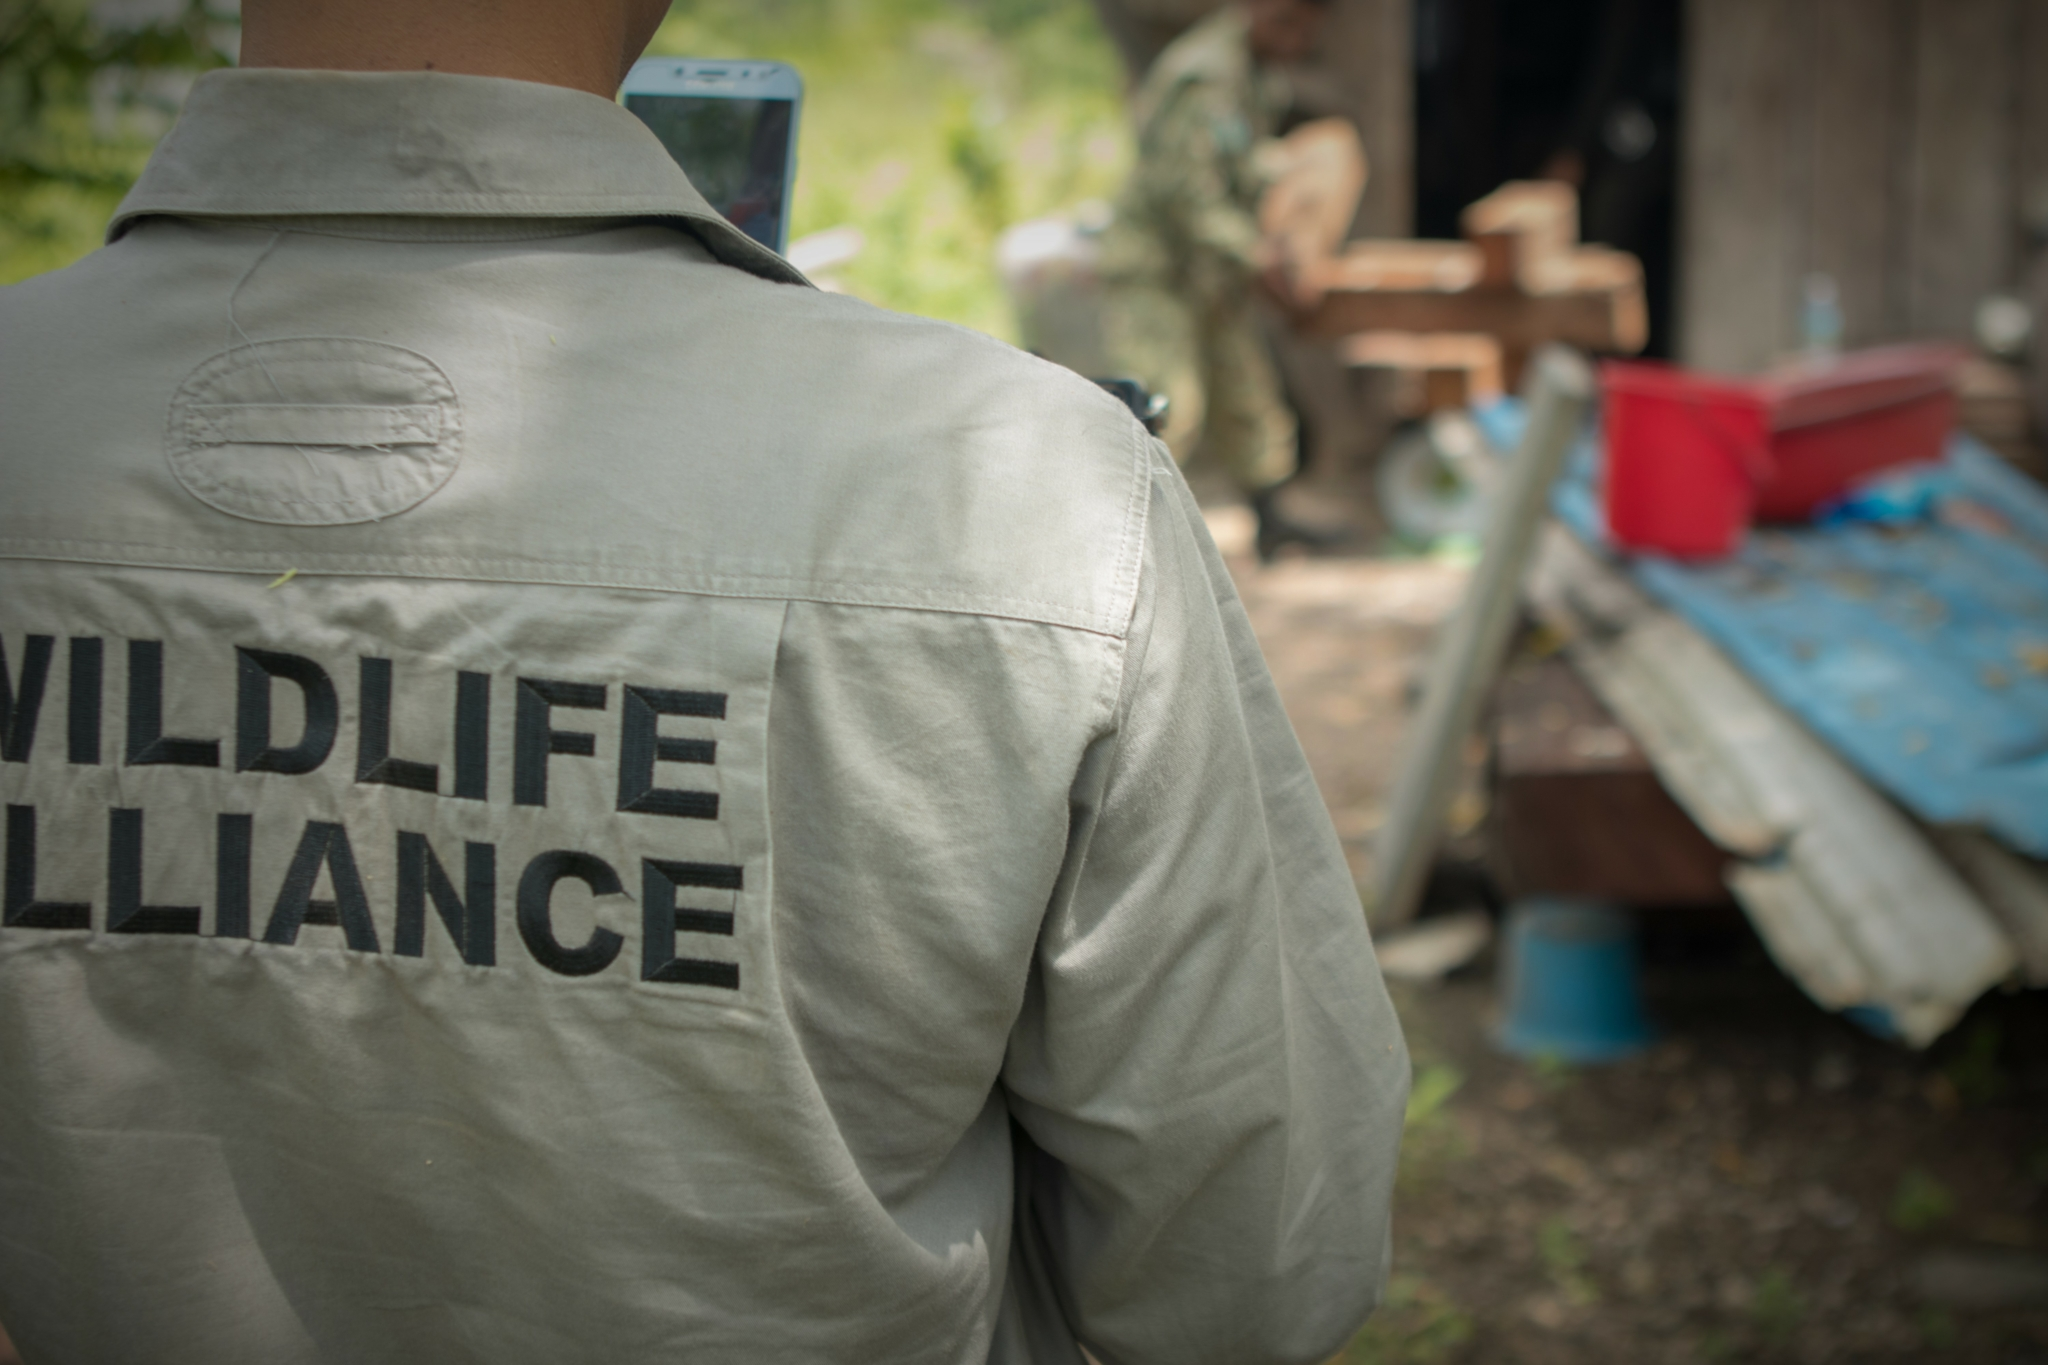 Wildlife Alliance rangers